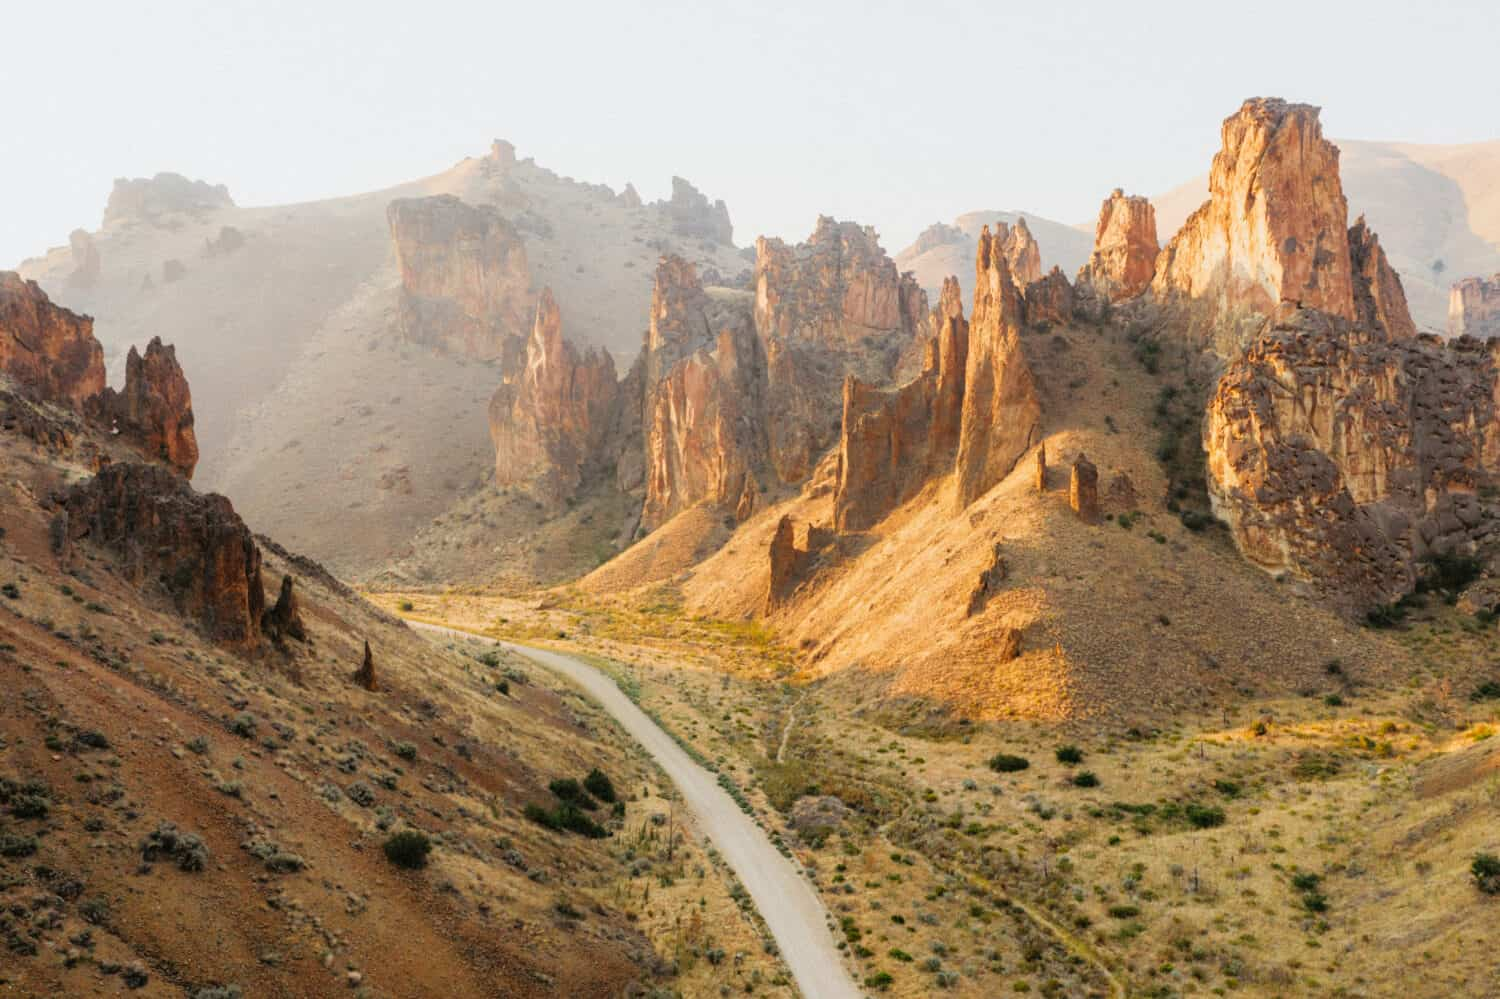 Eastern Oregon Road Trip Route - Leslie Gulch Stop